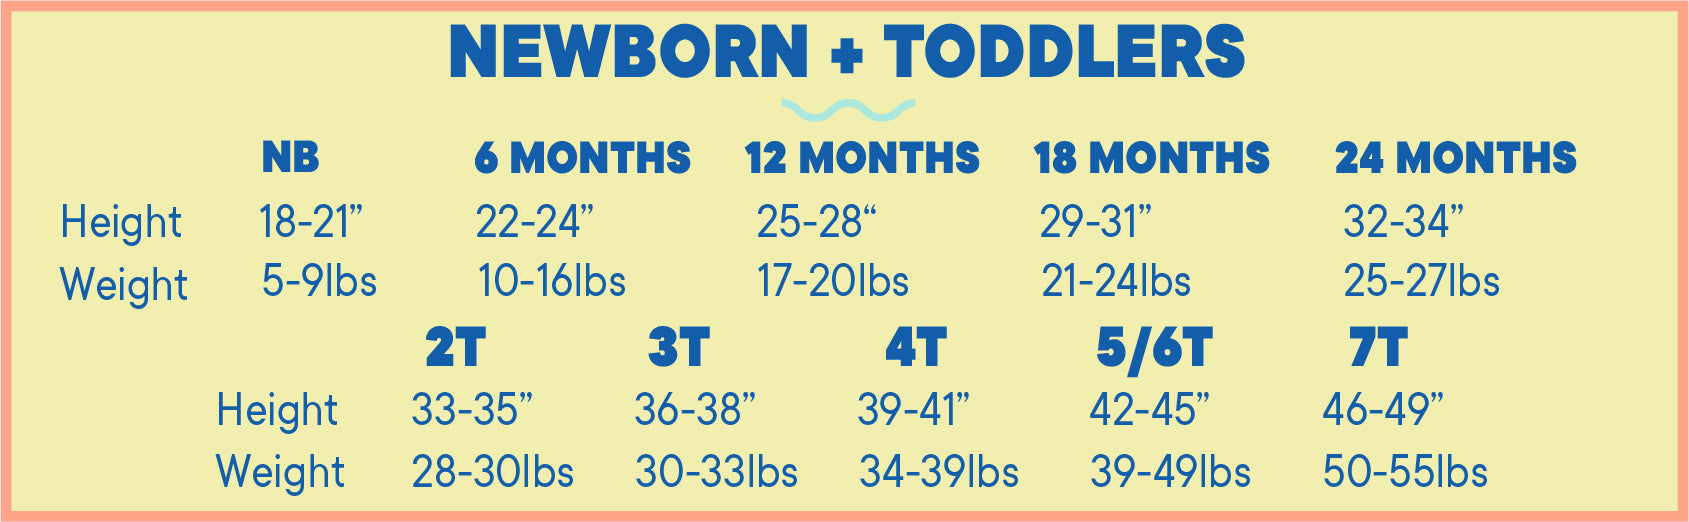 Newborn + Toddler Size Chart